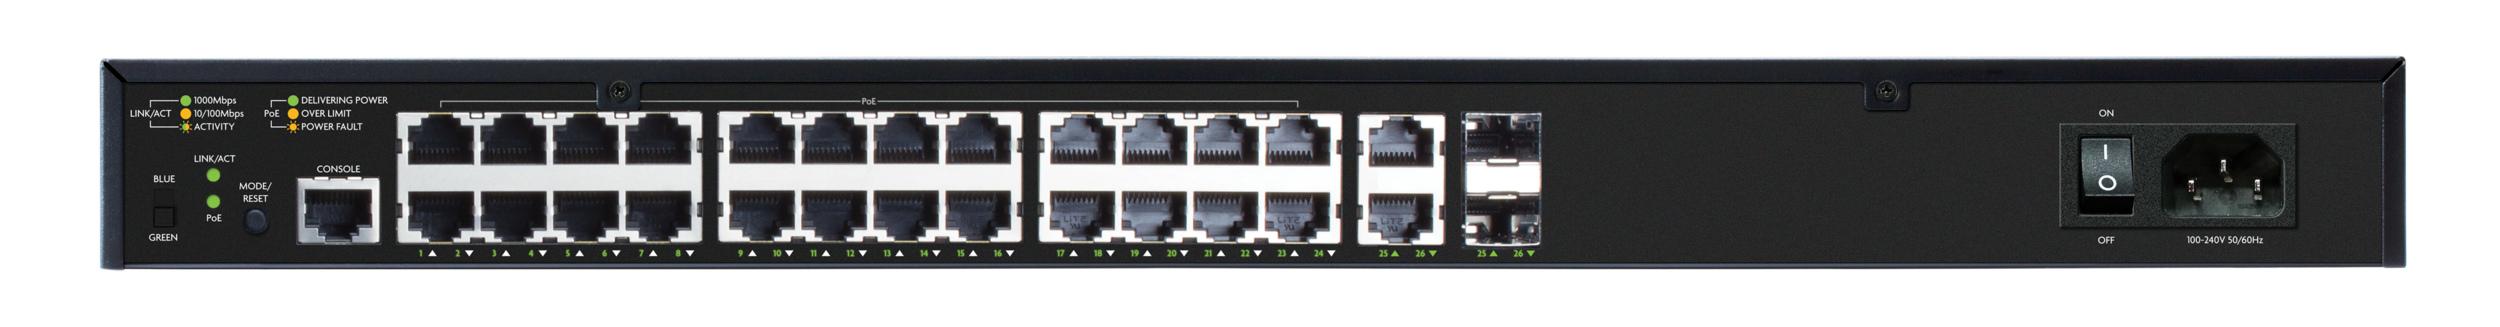 Switches - Network Switches allow all of your devices to be hard wired together. They come in all shapes and sizes depending on your needs. Some provide power to touchscreens, access points and cameras via PoE.